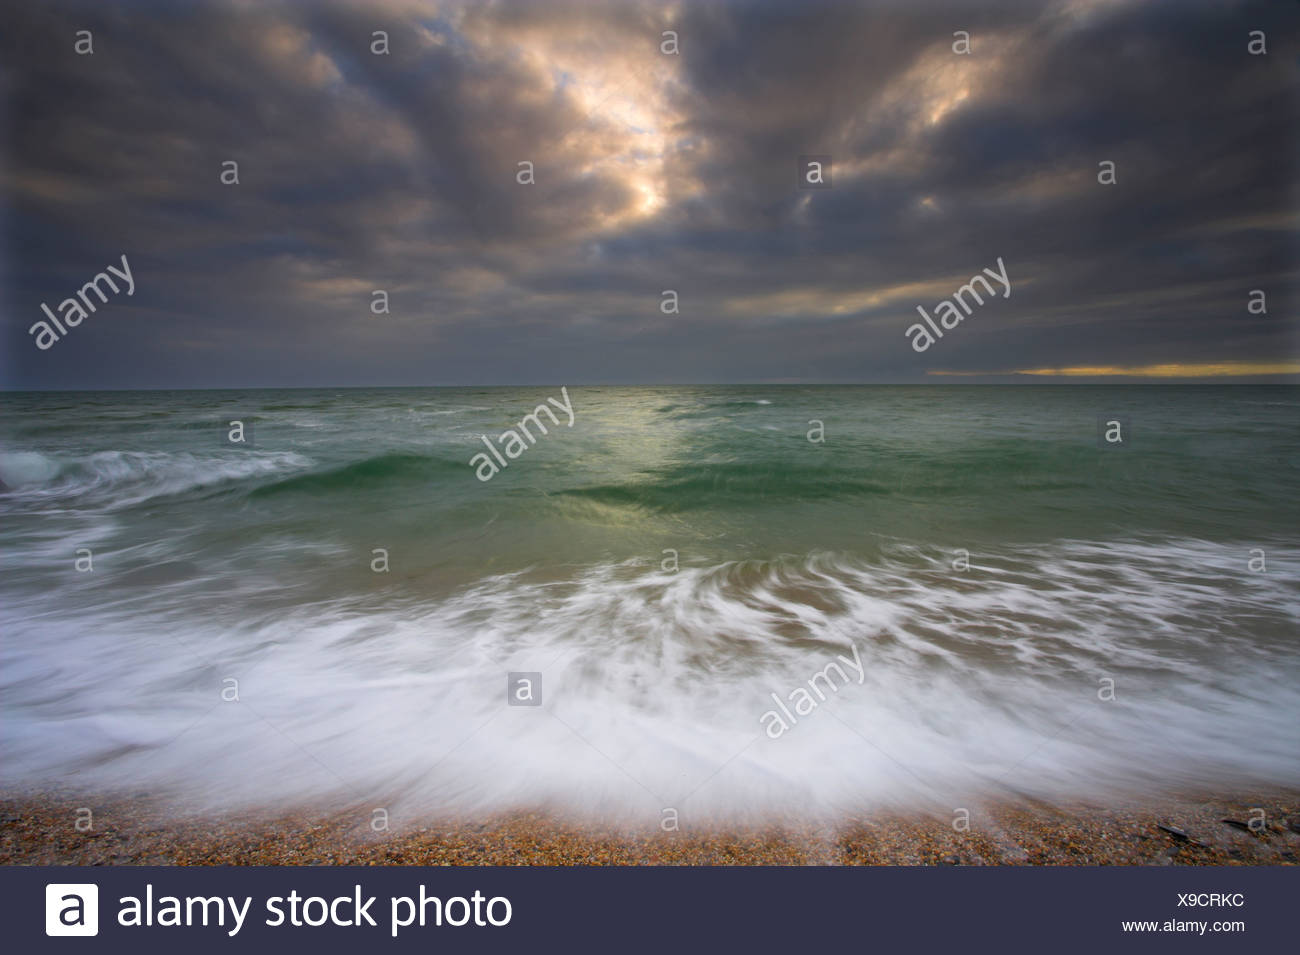 Wave action and approaching storm. Slapton sands. Devon - Stock Image